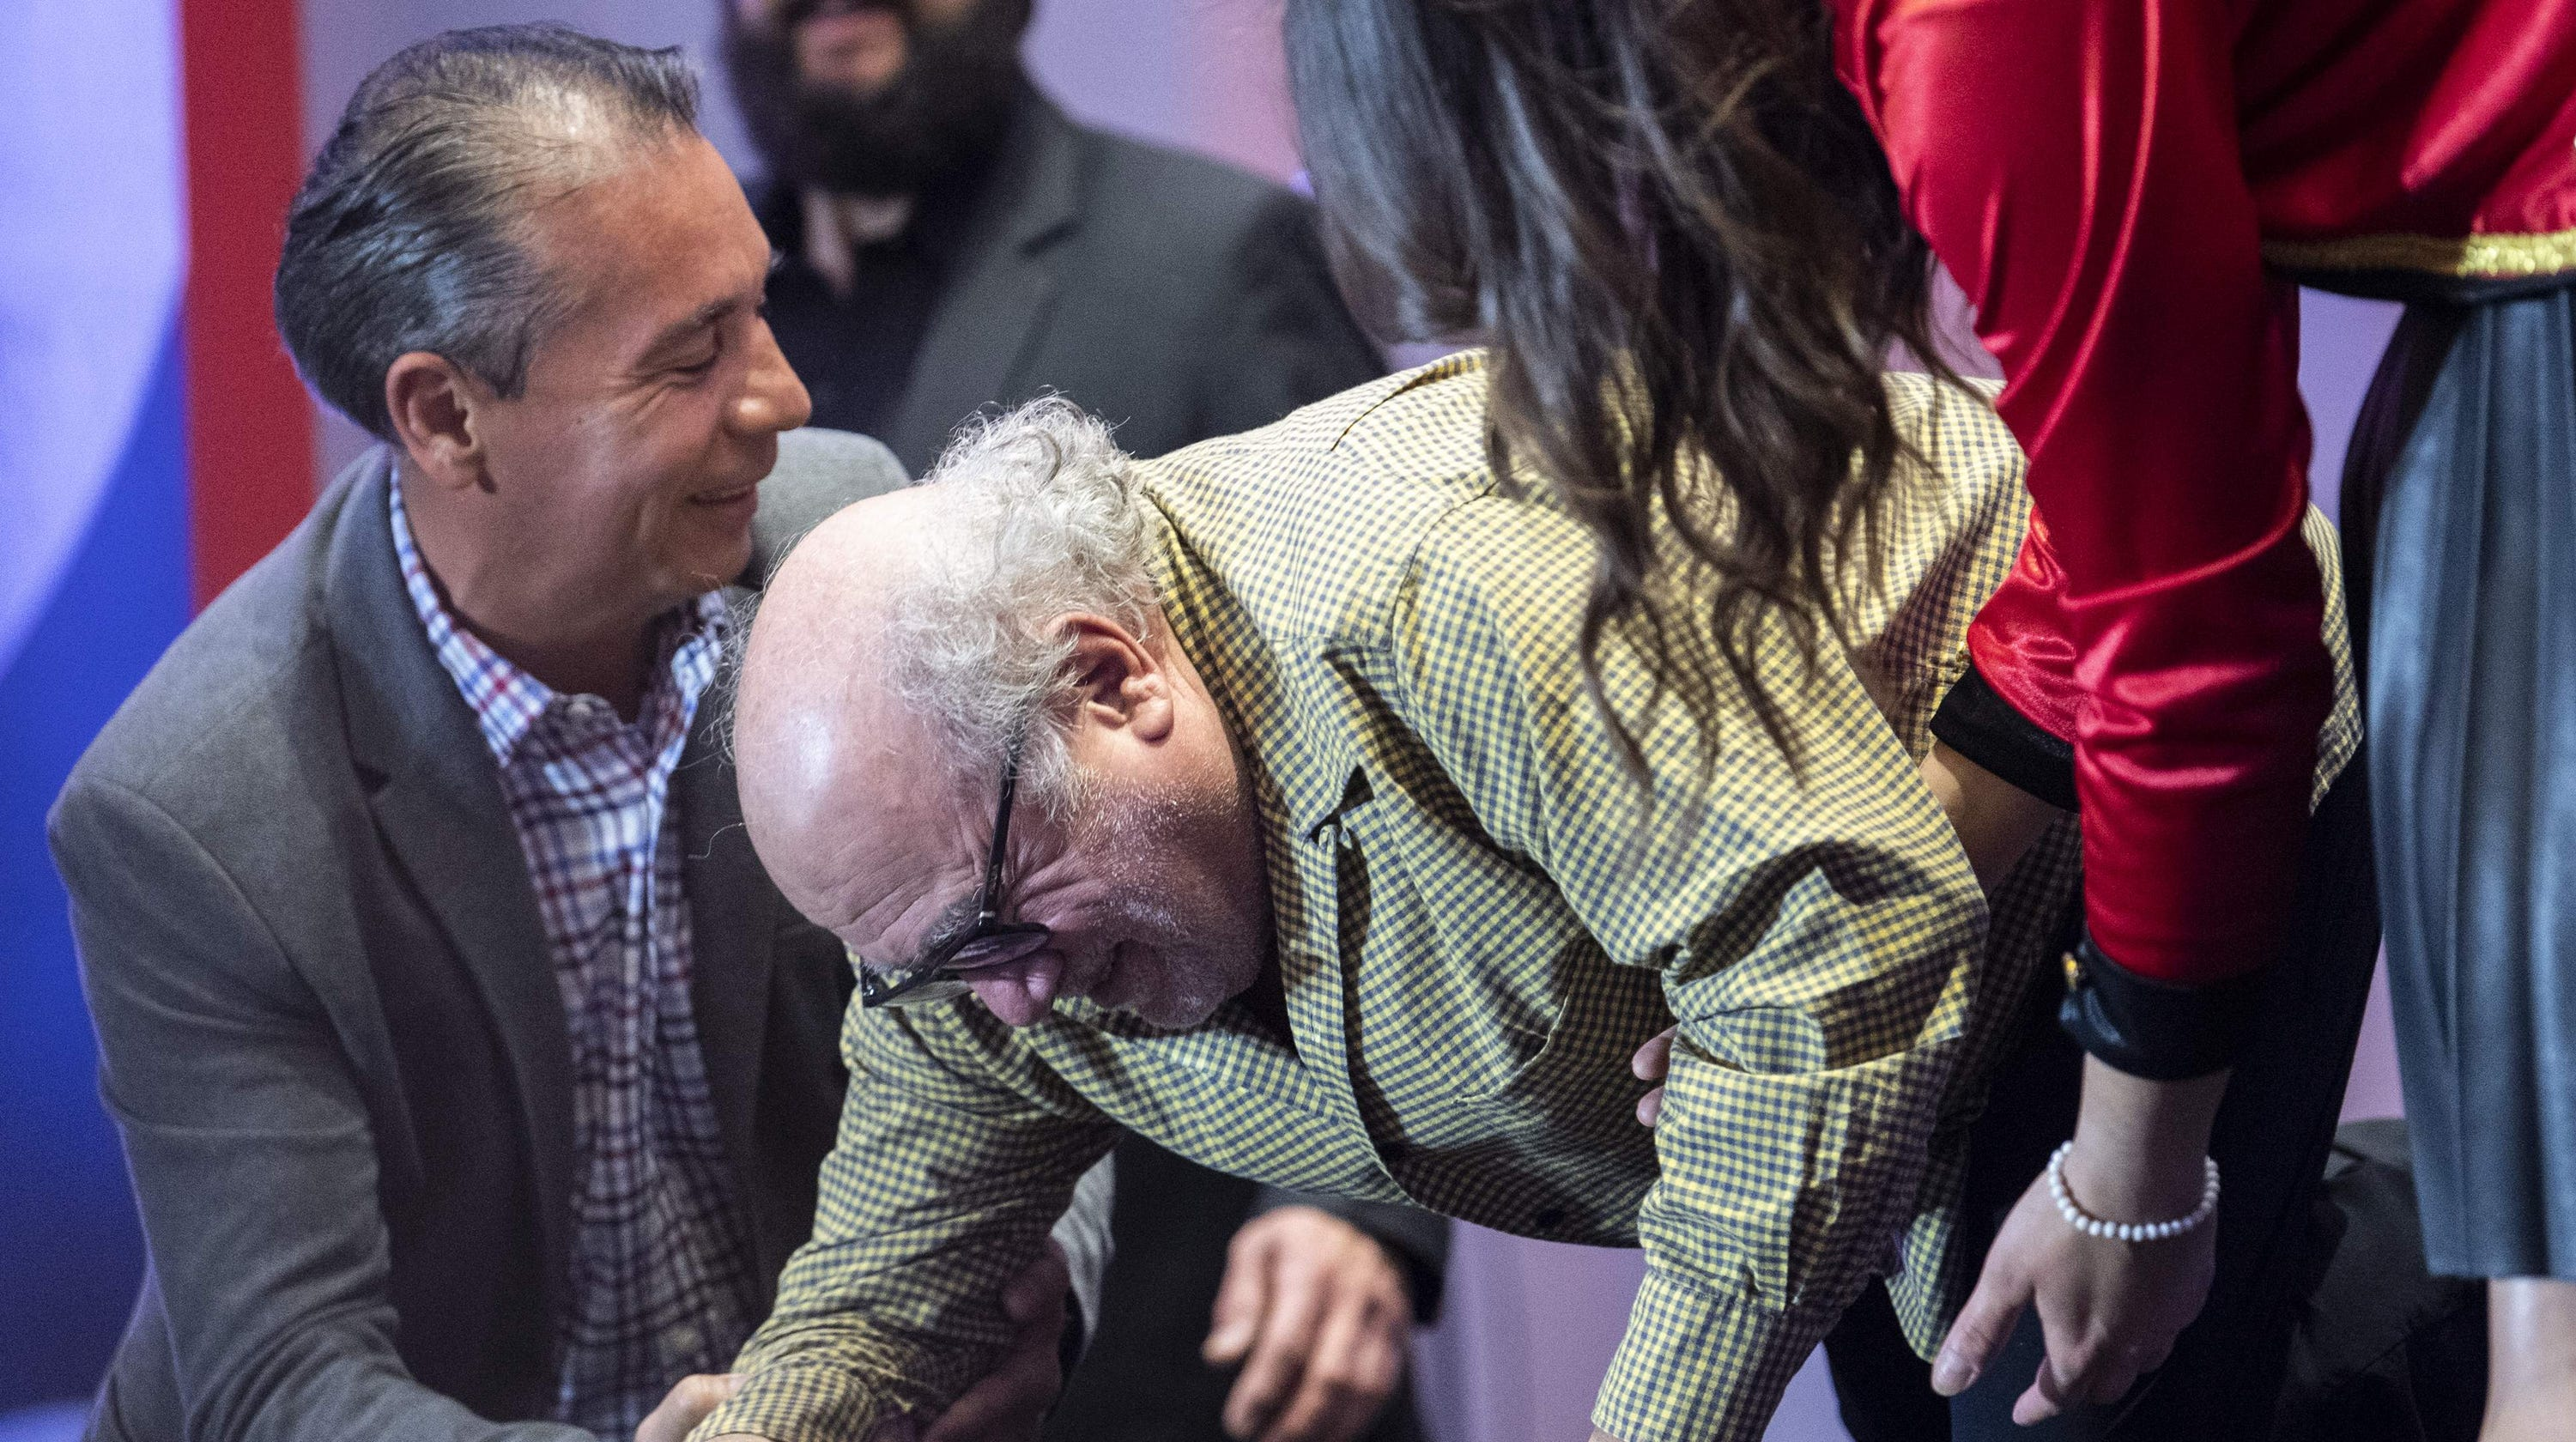 Ouch Danny Devito Falls Hard At A Dumbo Press Conference